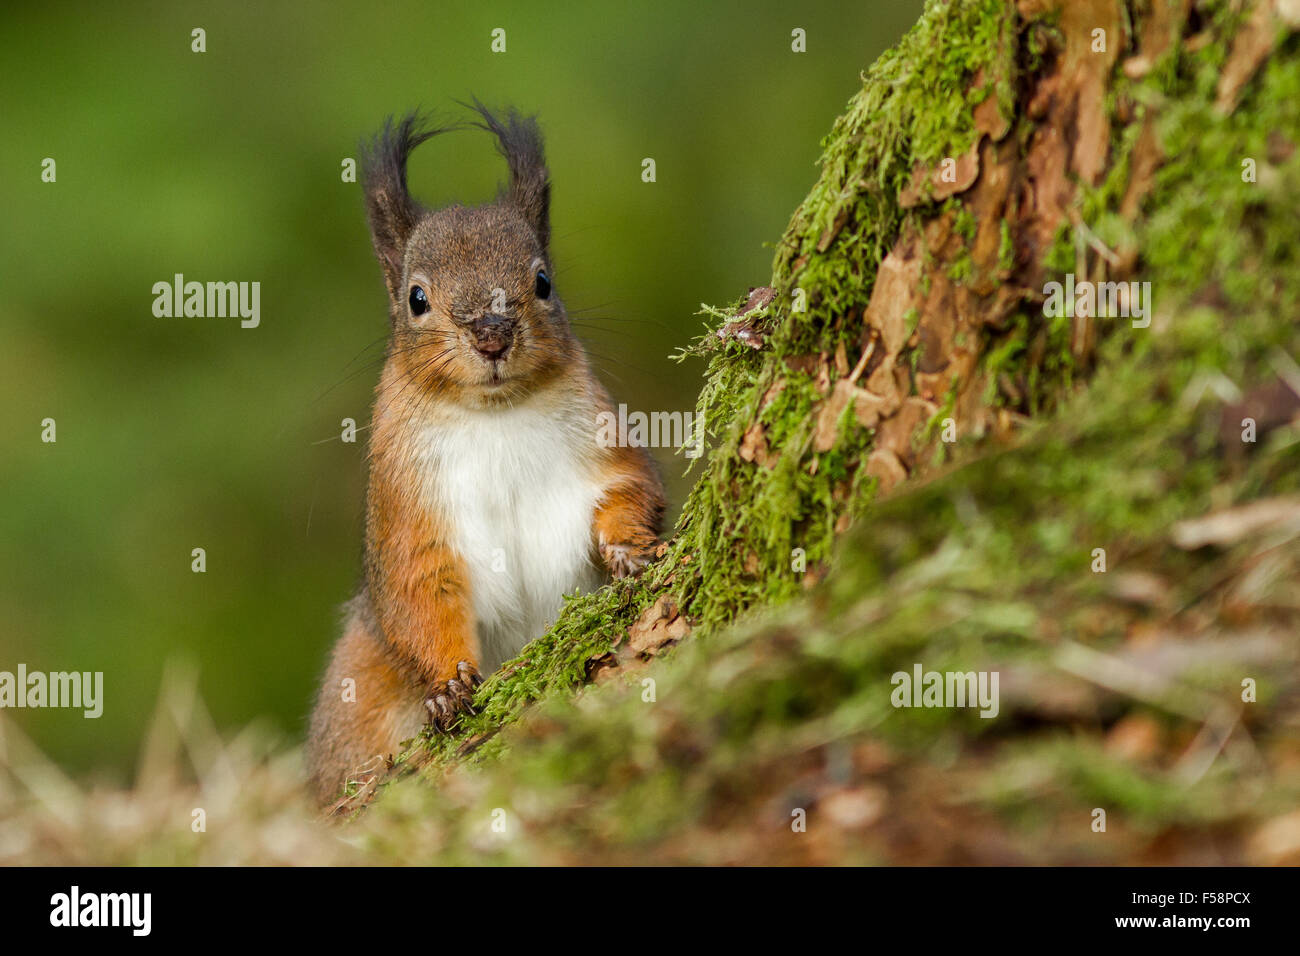 Ground level shot of an inquisitive red squirrel with tufted ears peeking out from behind a moss covered tree - Stock Image